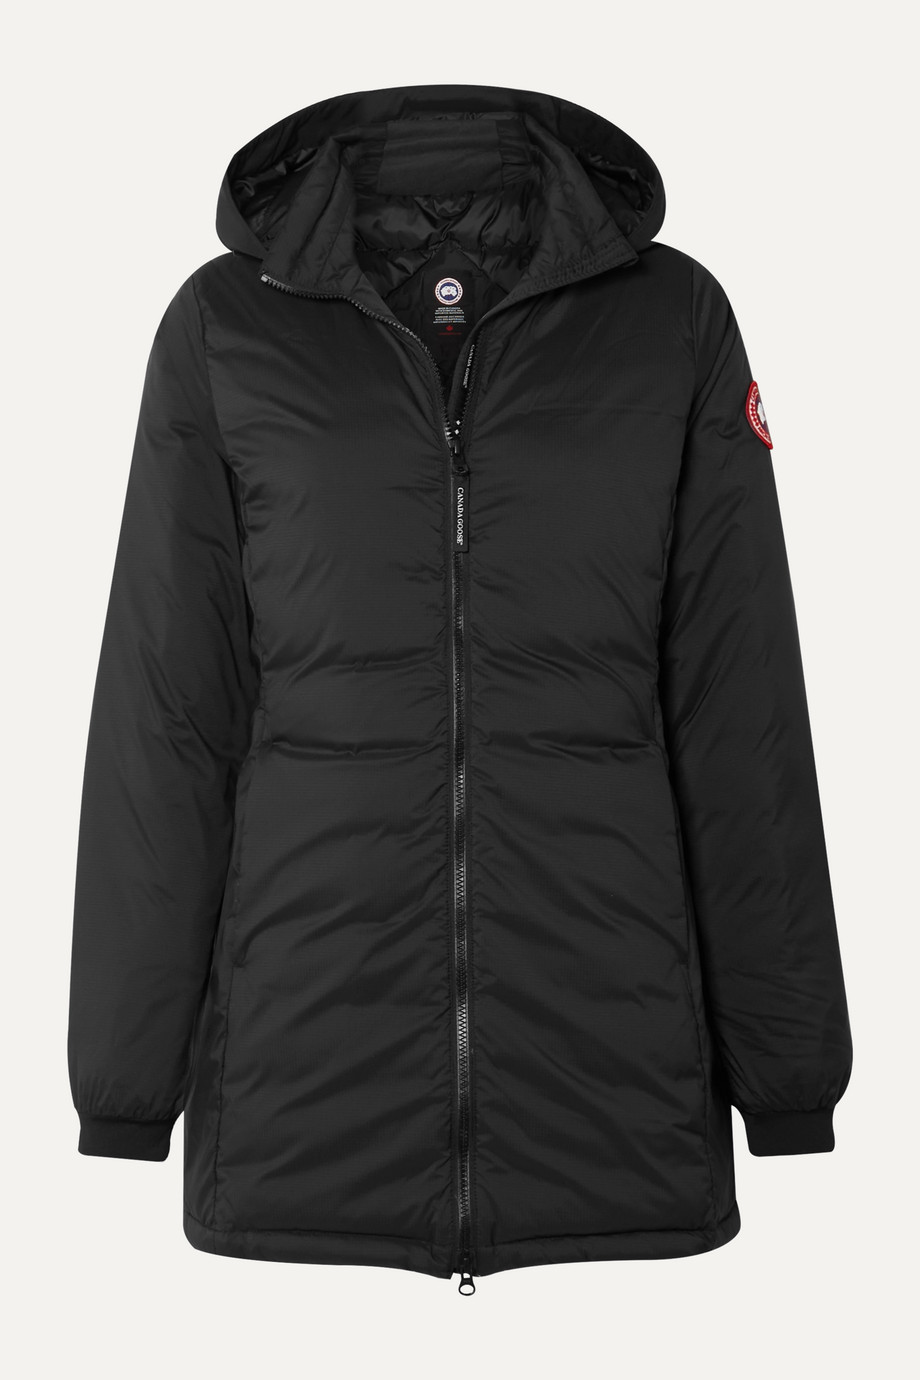 Canada Goose Camp hooded quilted ripstop down jacket